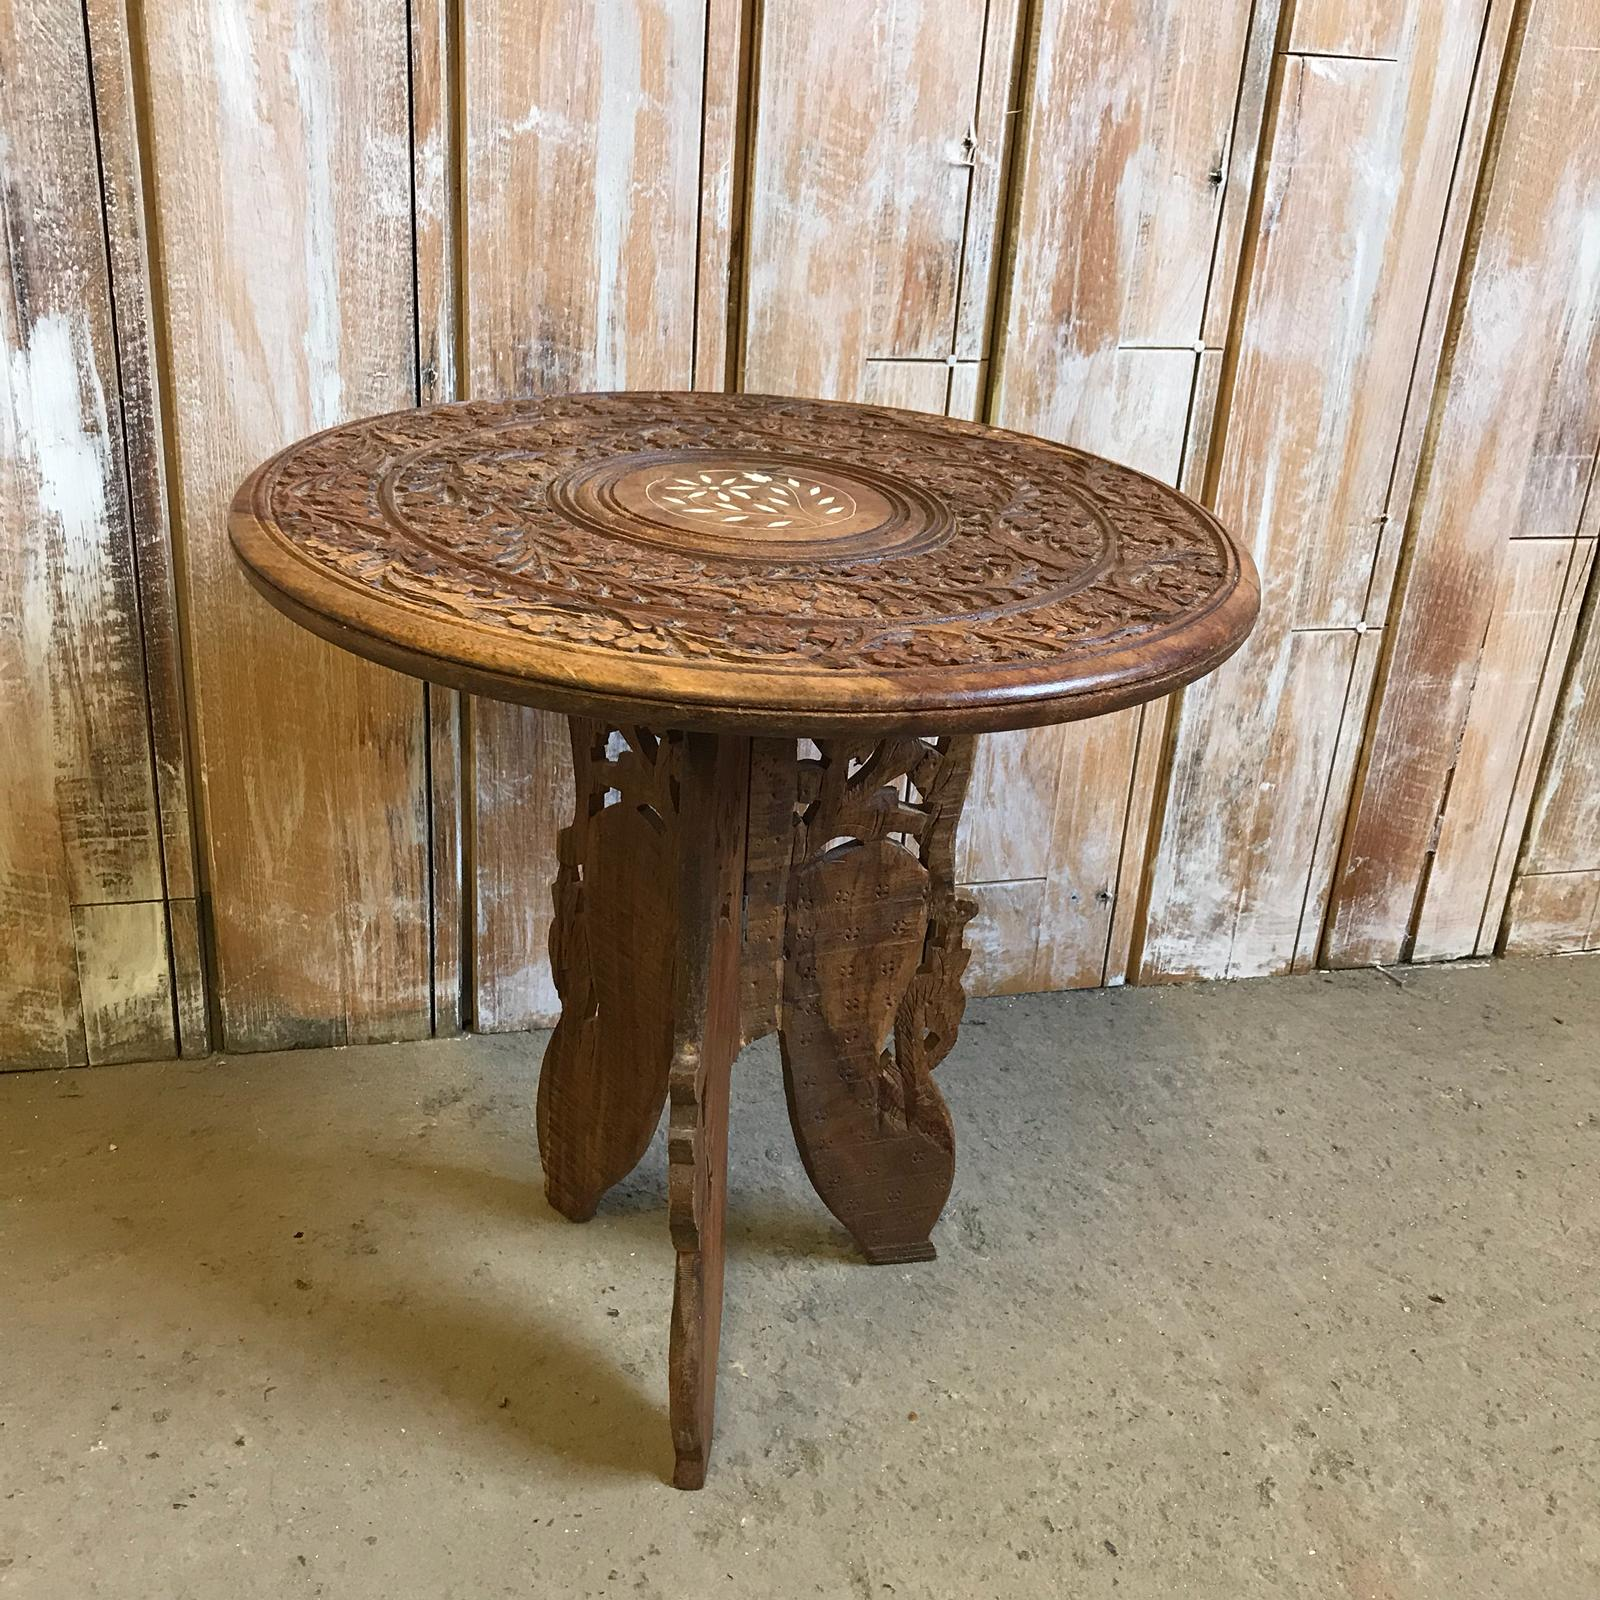 Wooden Carved Moroccan Table